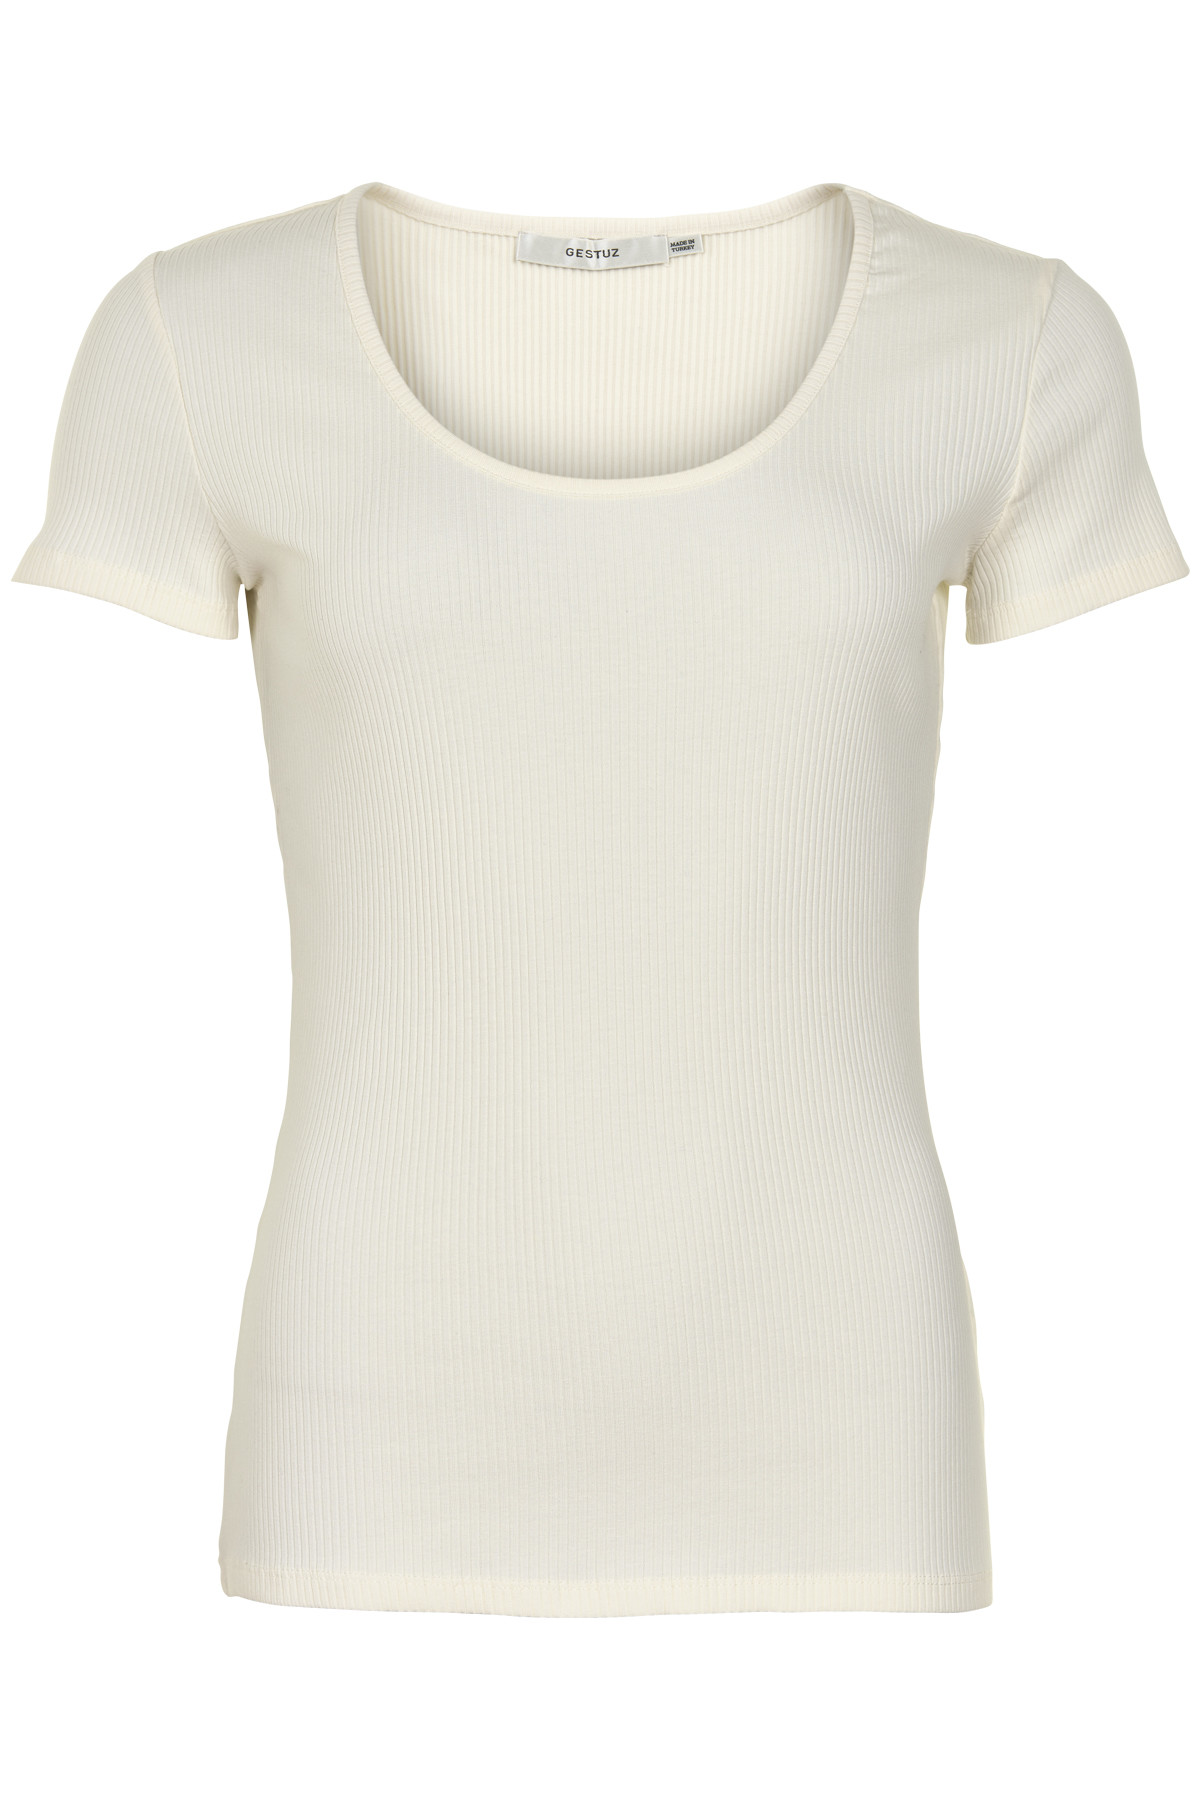 Image of   GESTUZ ROLLA TEE B (Bright White 90014, S)